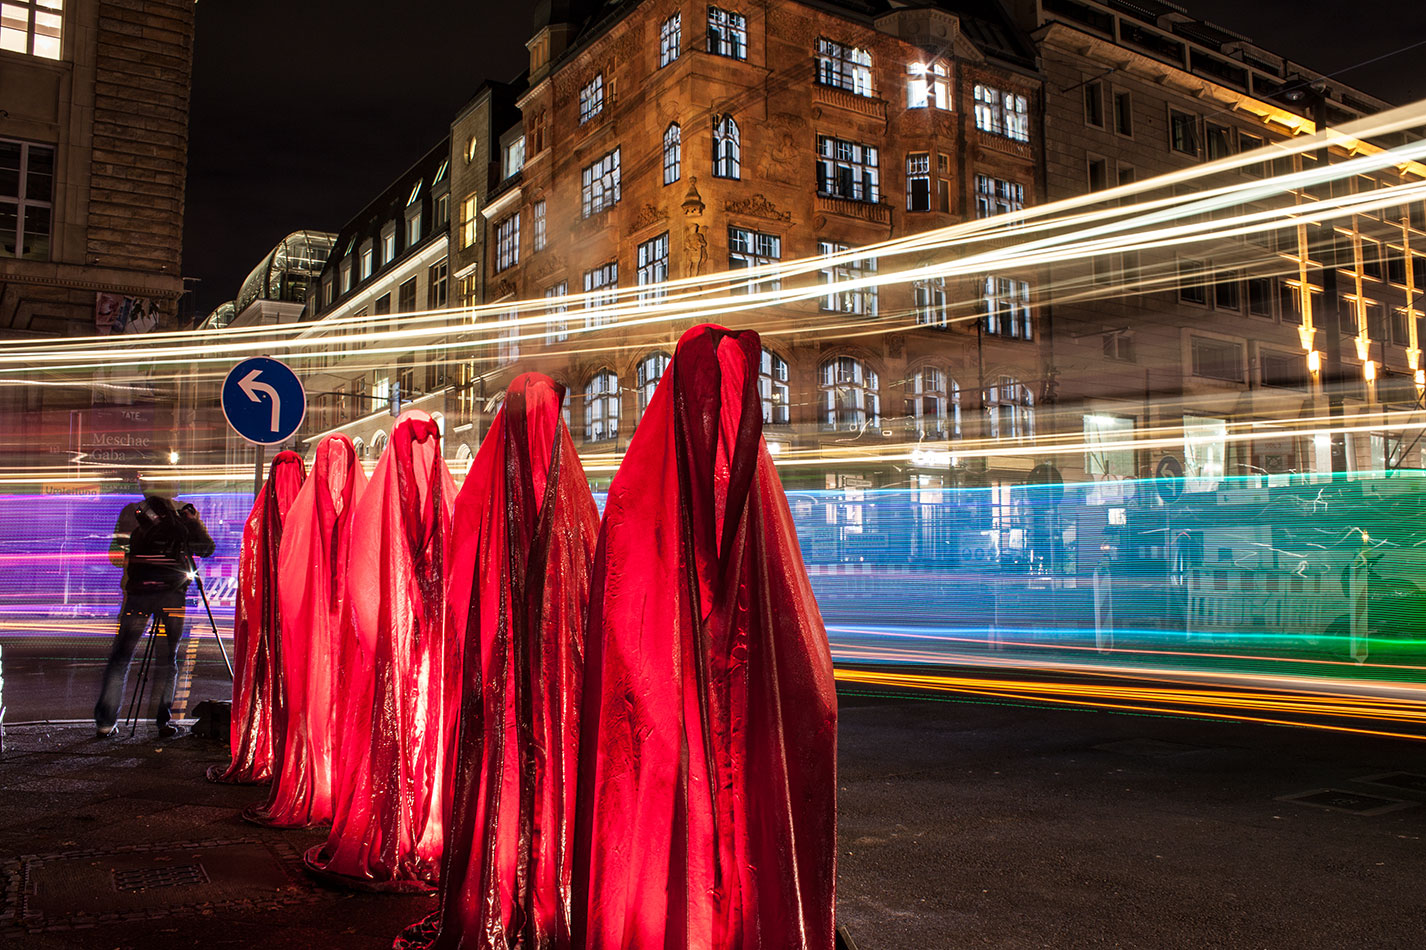 festival-of-lights-berlin-microsoft-light-art-show-exhibition-lumina-guardians-of-time-manfred-kili-kielnhofer-contemporary-arts-design-sculpture-3470